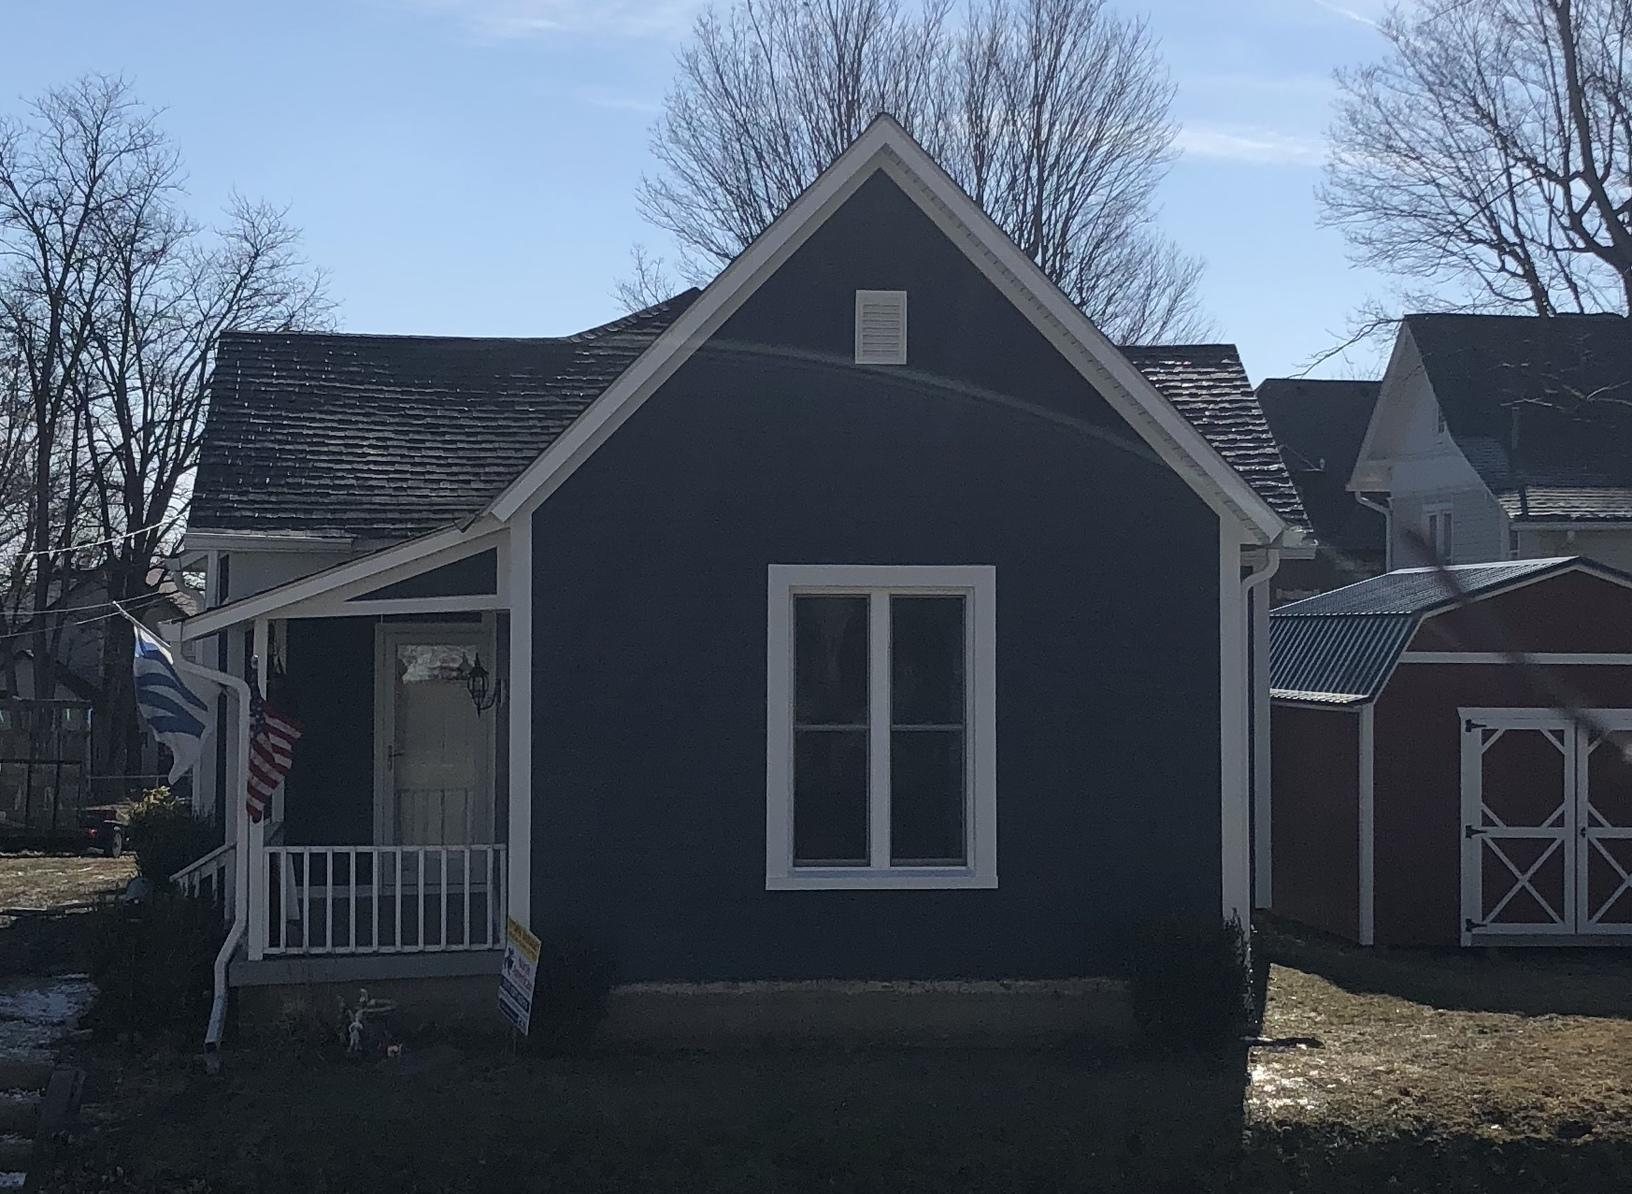 James Hardie Project in Brazil, Indiana - After Photo